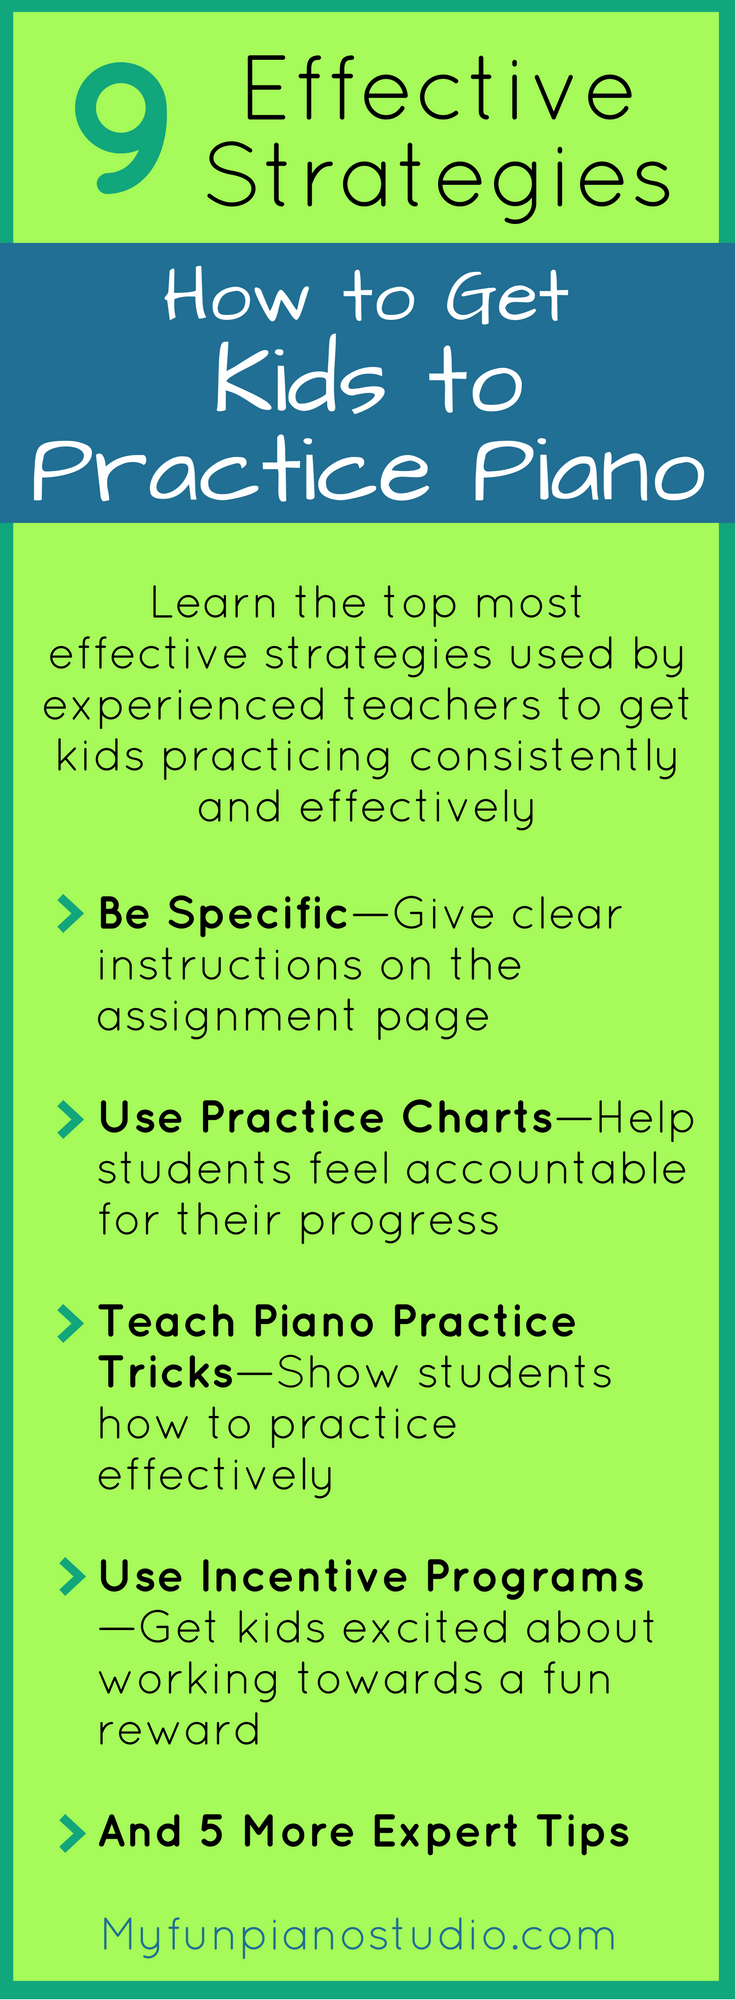 How to Get Kids to Practice Piano